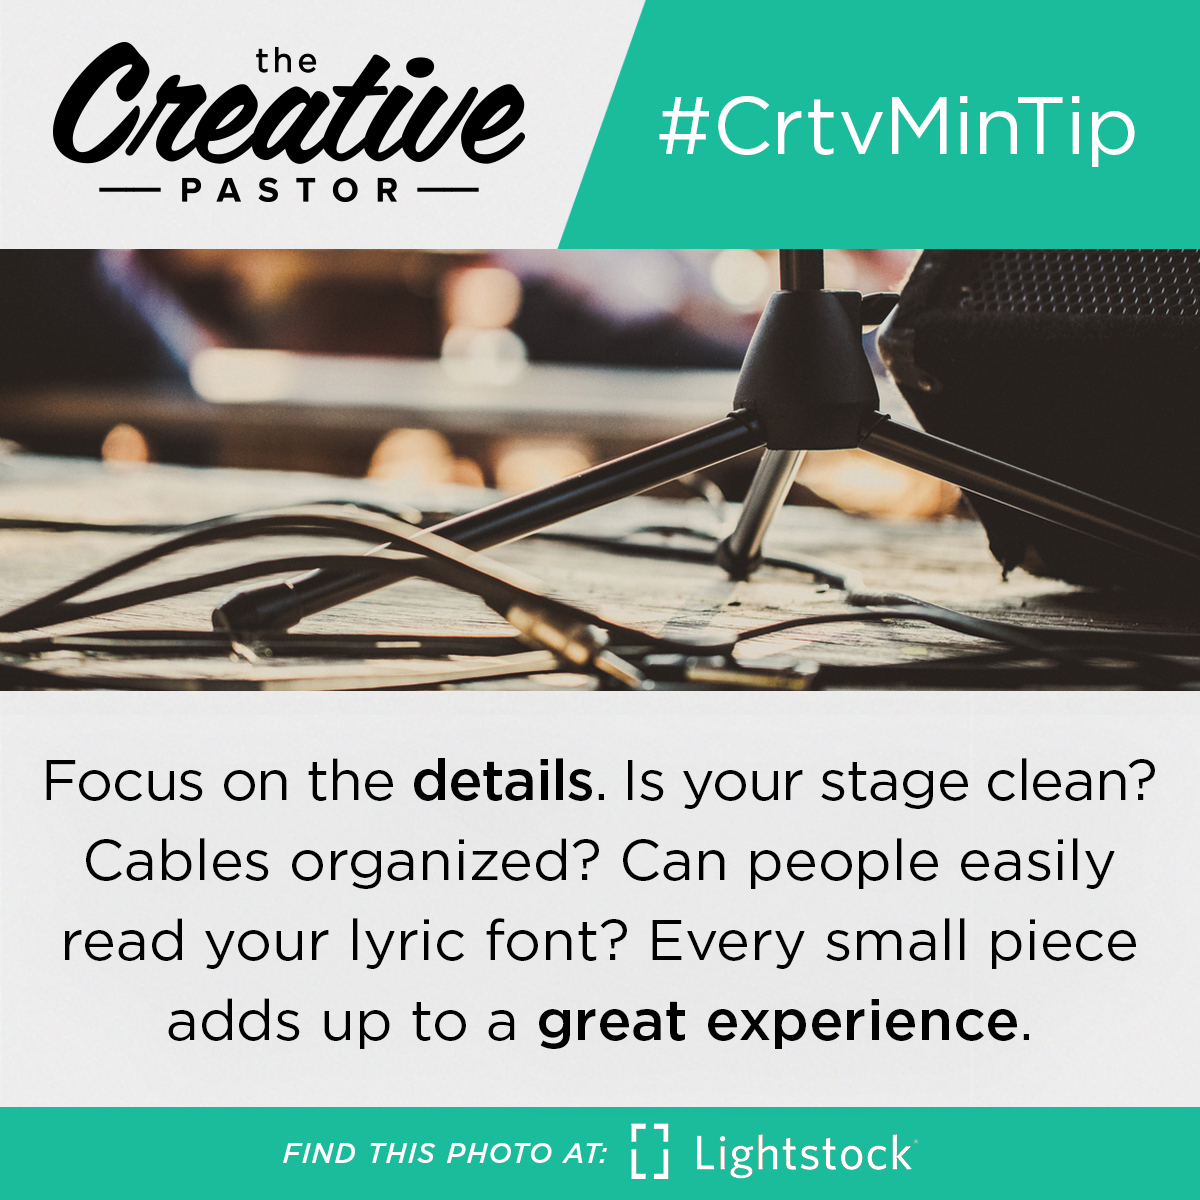 Focus on the details. Is your stage clean? Cables organized? Can people easily read your lyric font? Every small piece adds up to a great experience.